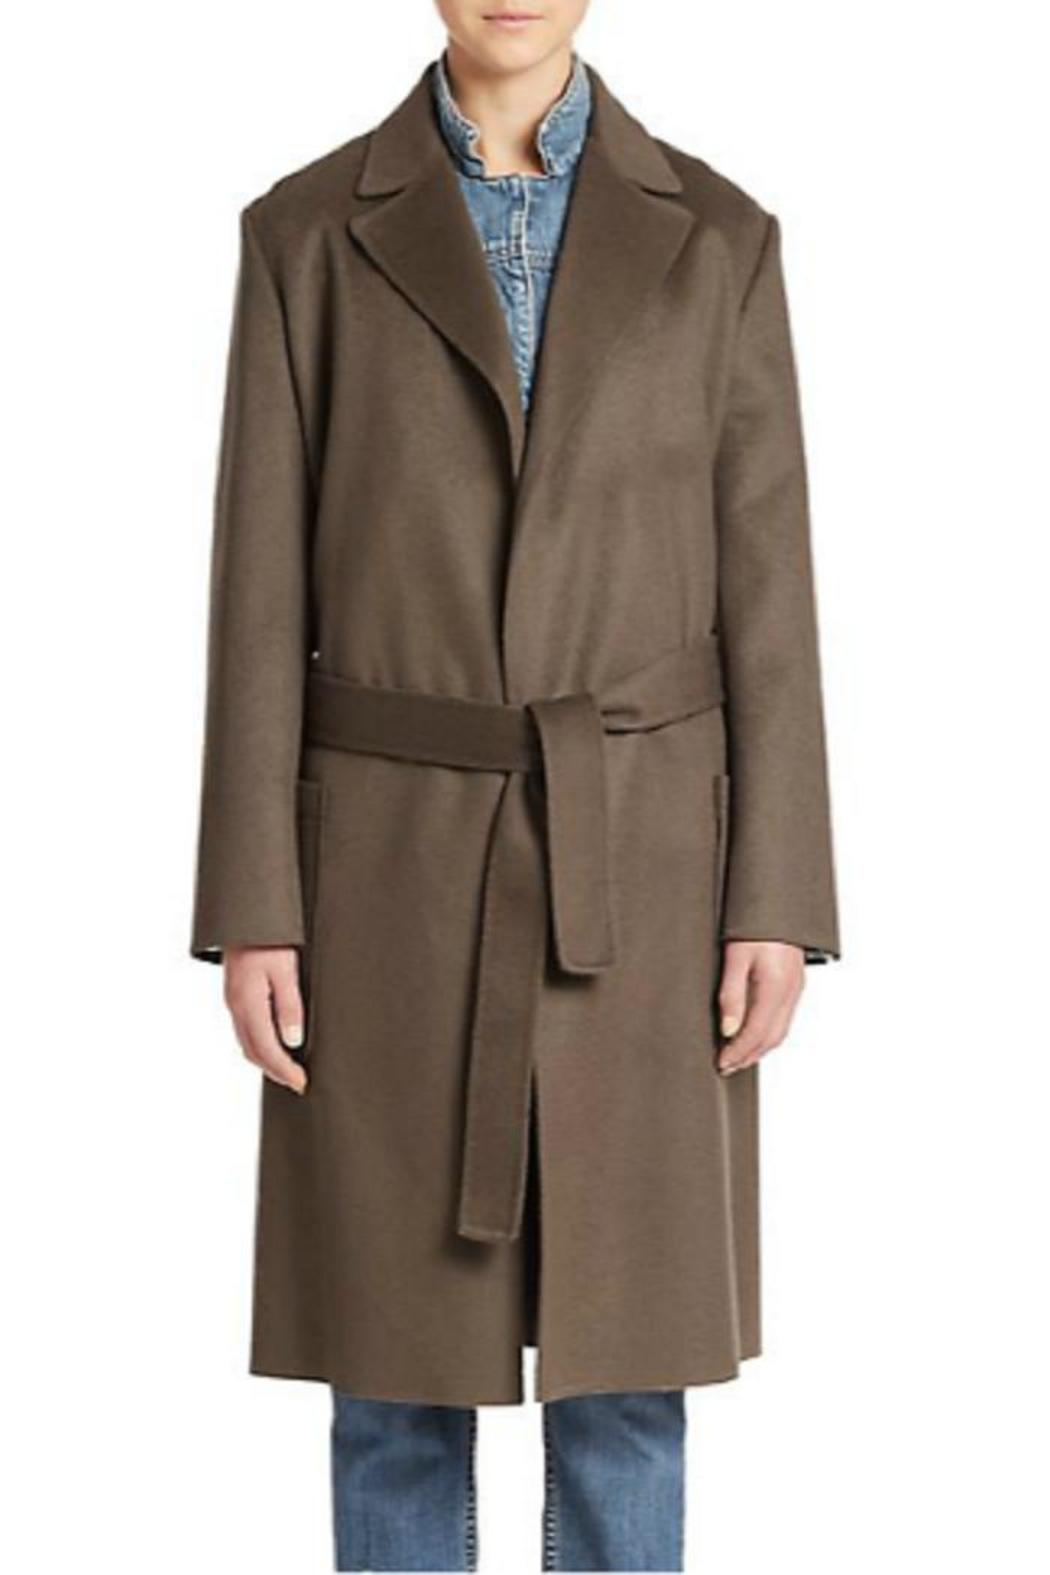 Helmut Lang Wool Cashmere Coat - Back Cropped Image